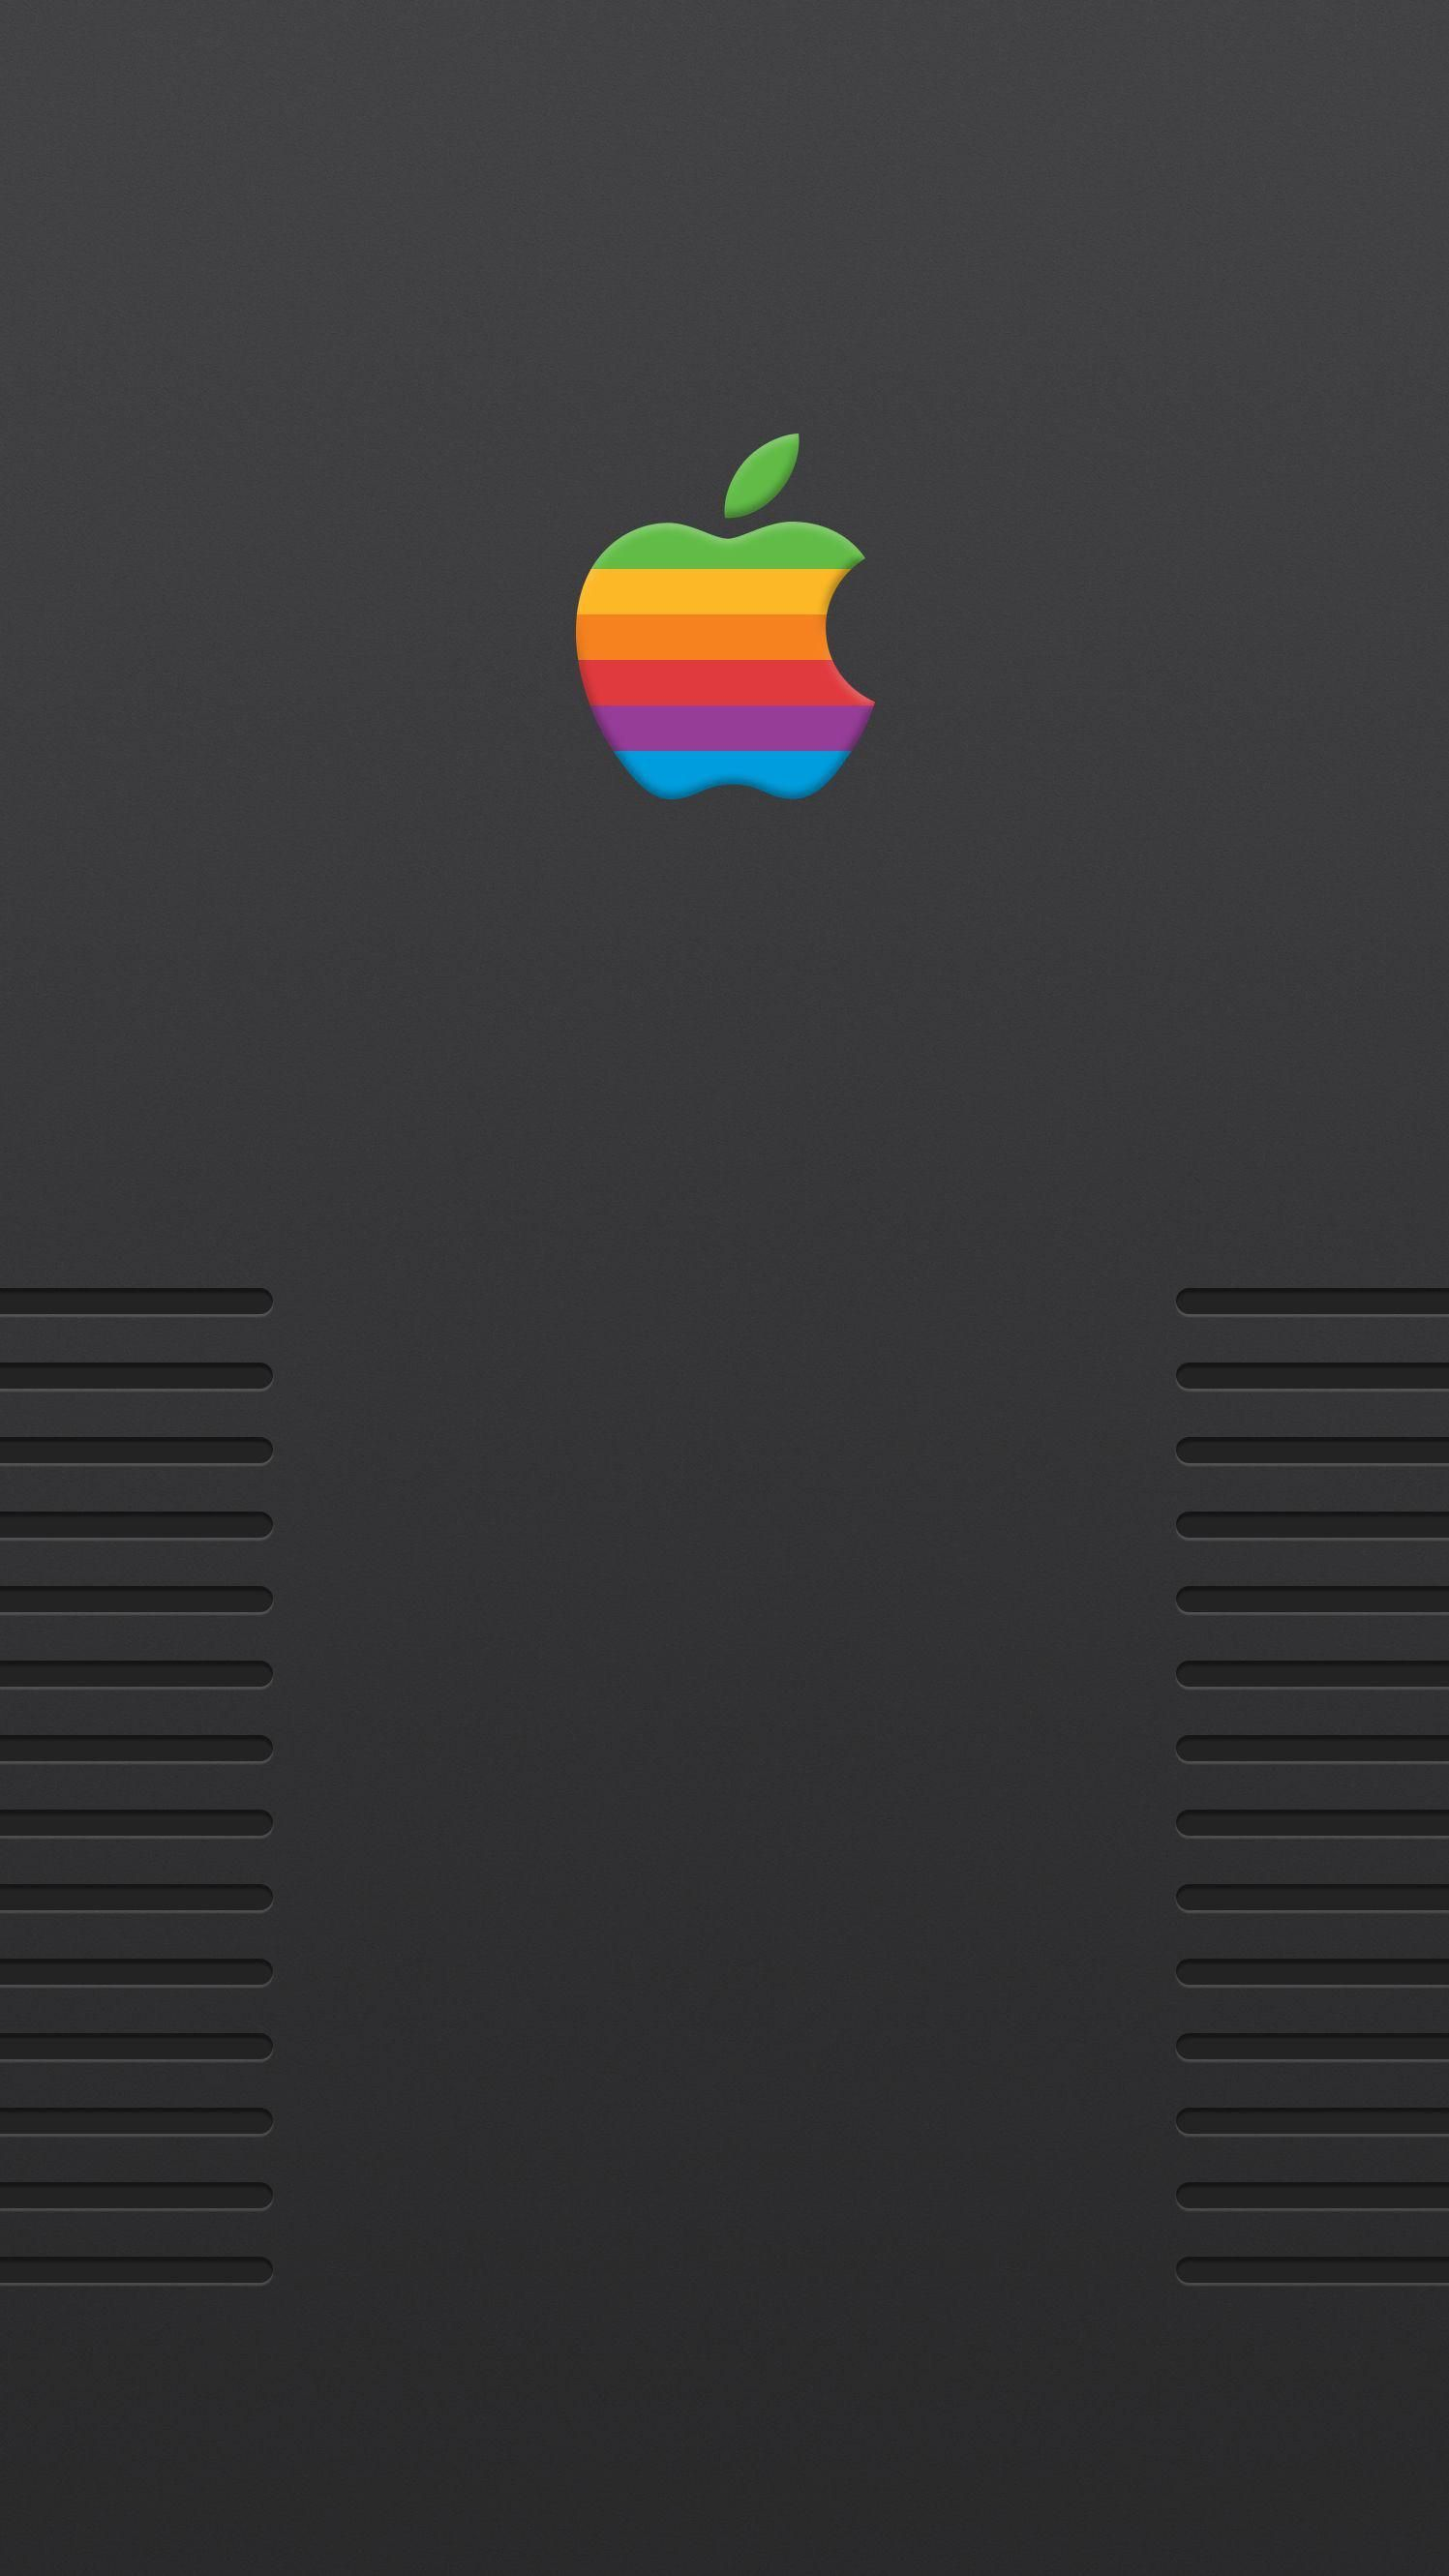 I Was Looking For An Uncompressed Version Of The Other Retro Apple